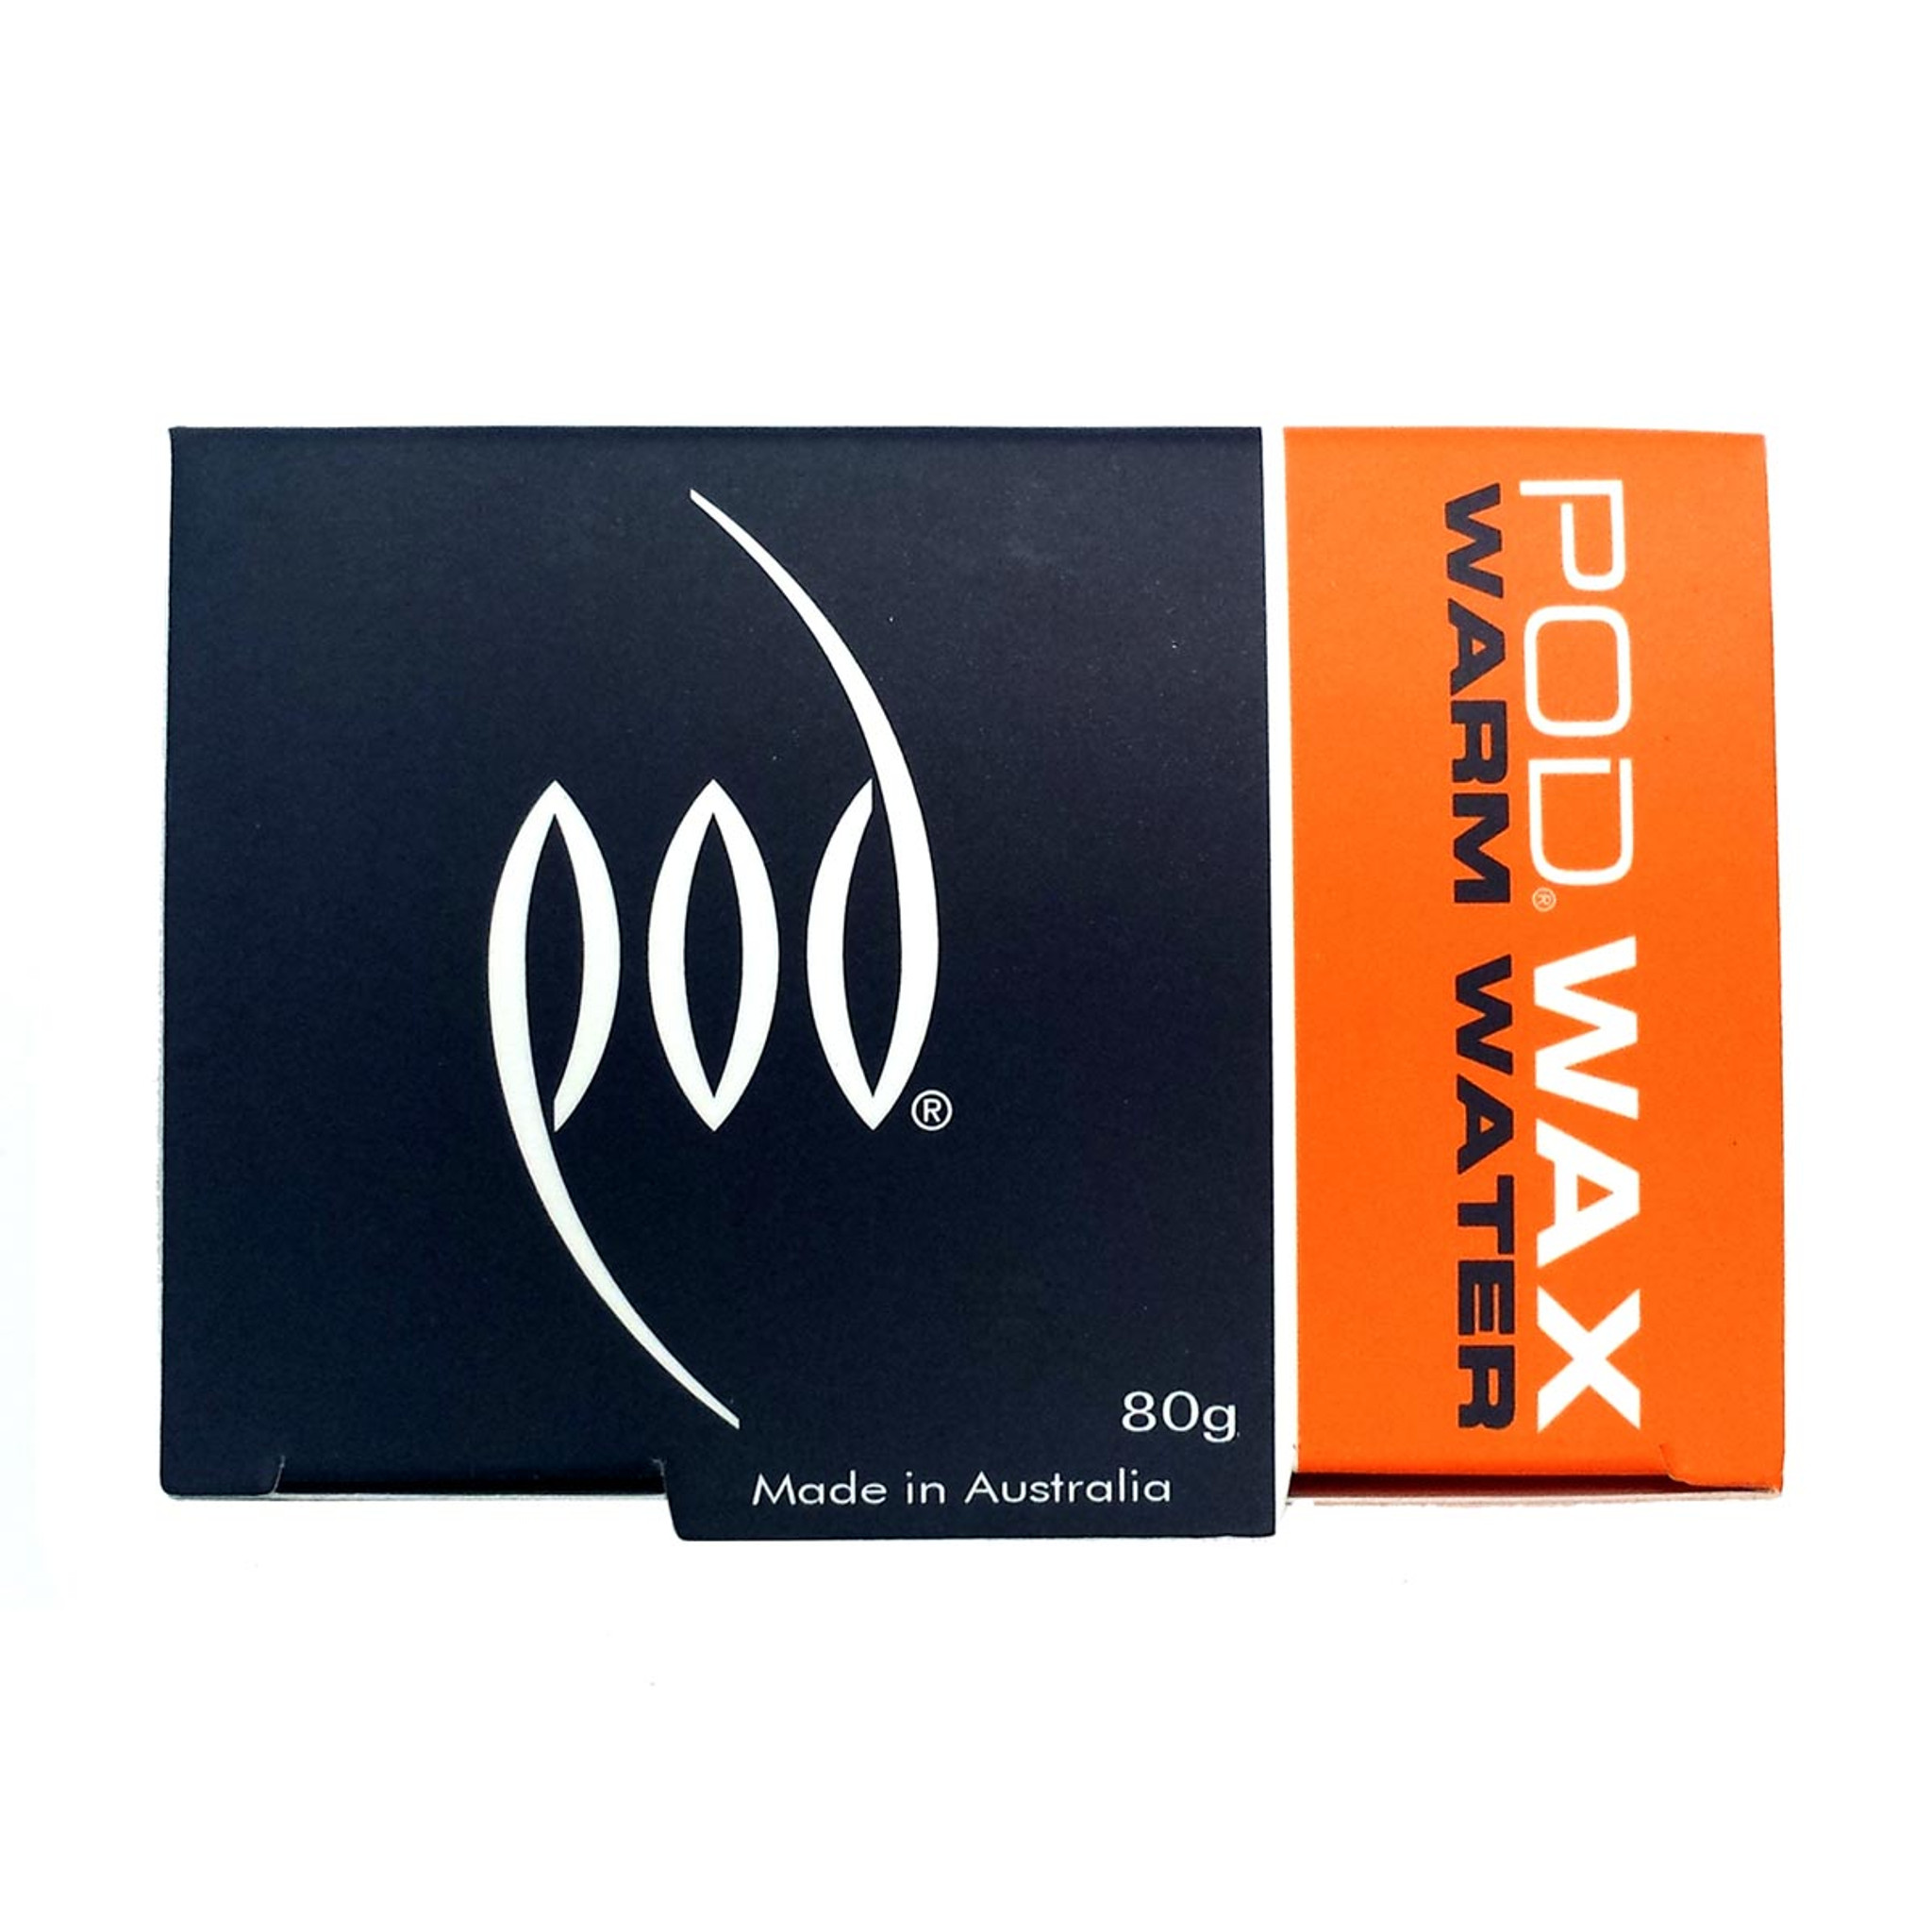 POD Surf Wax - Bodyboards - Softboards - Surfboards